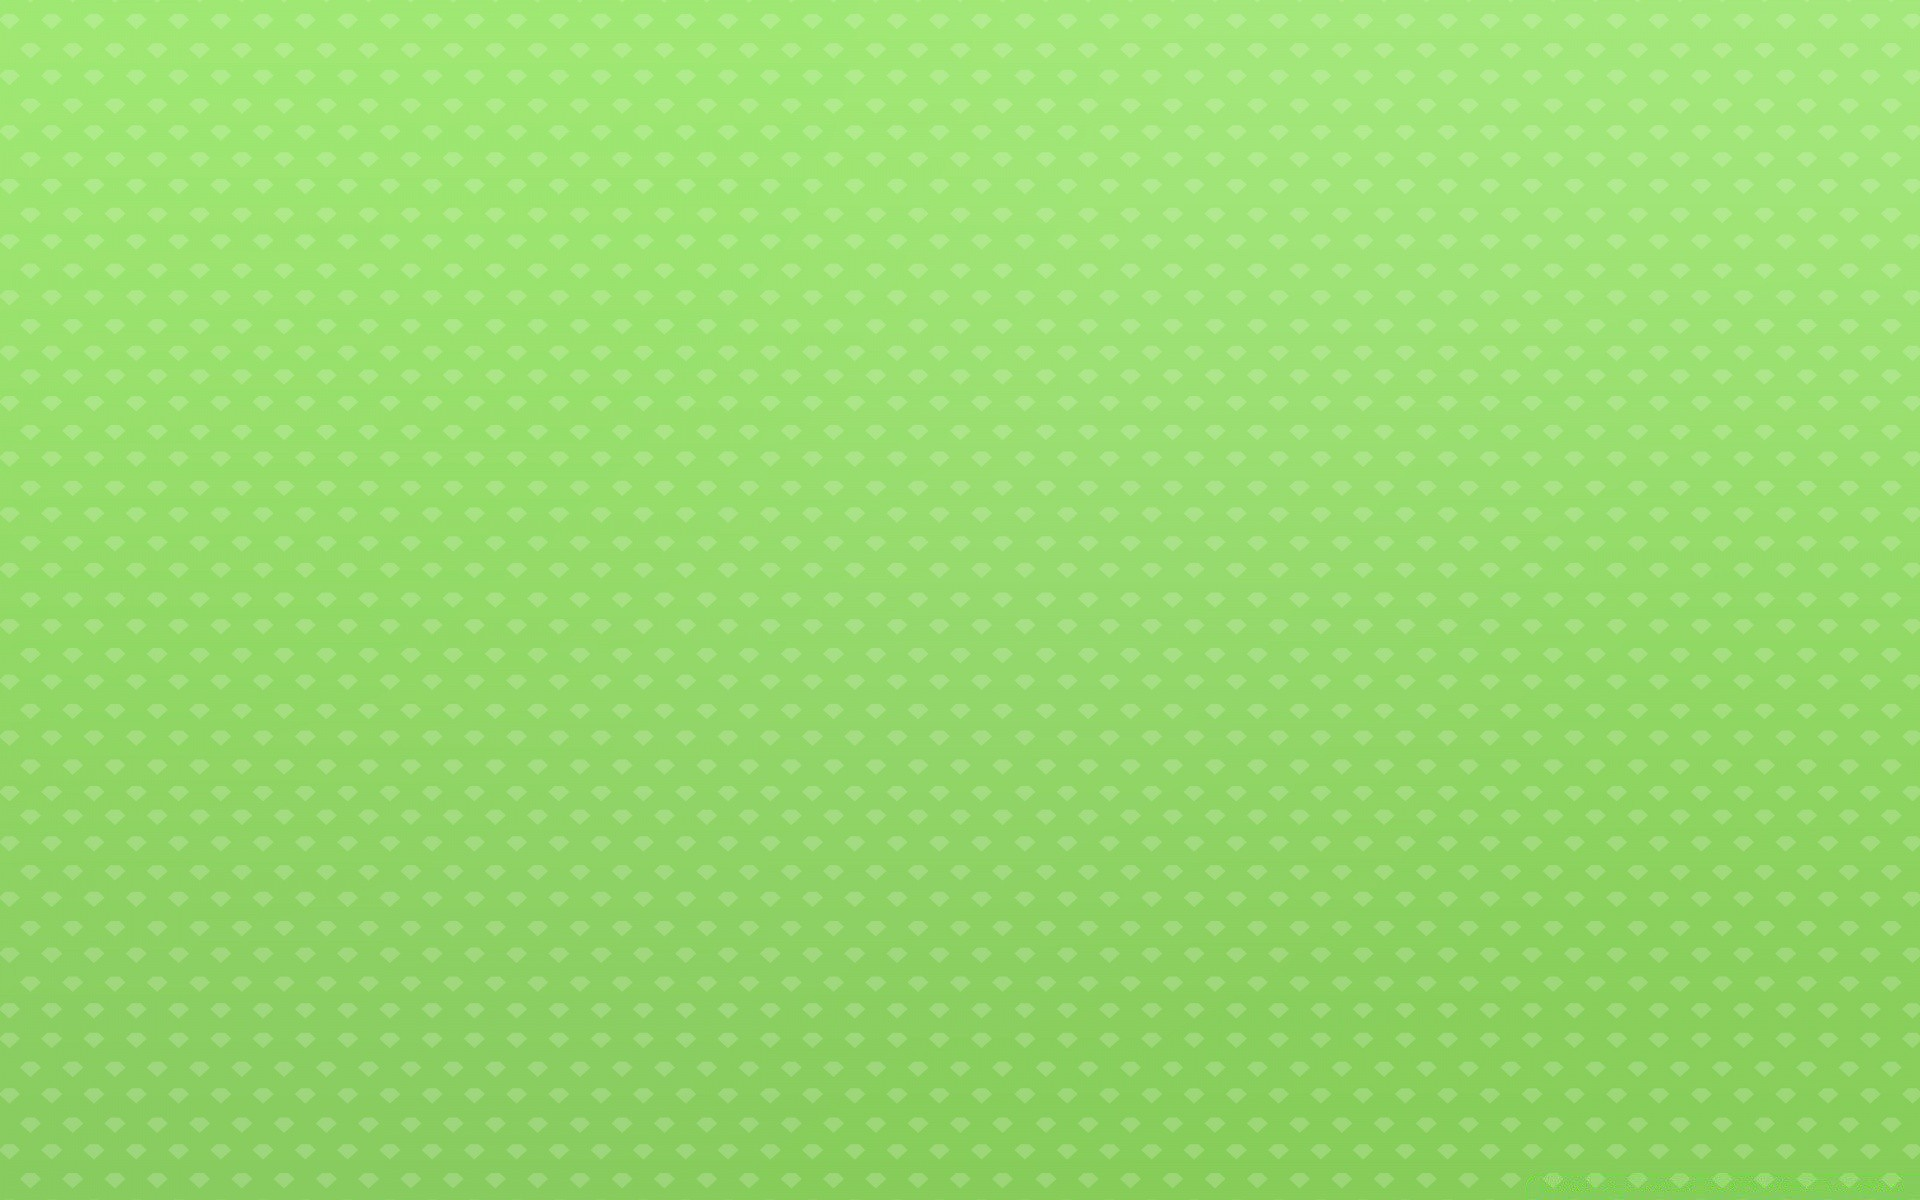 Green Diamond Patterns Android Wallpapers